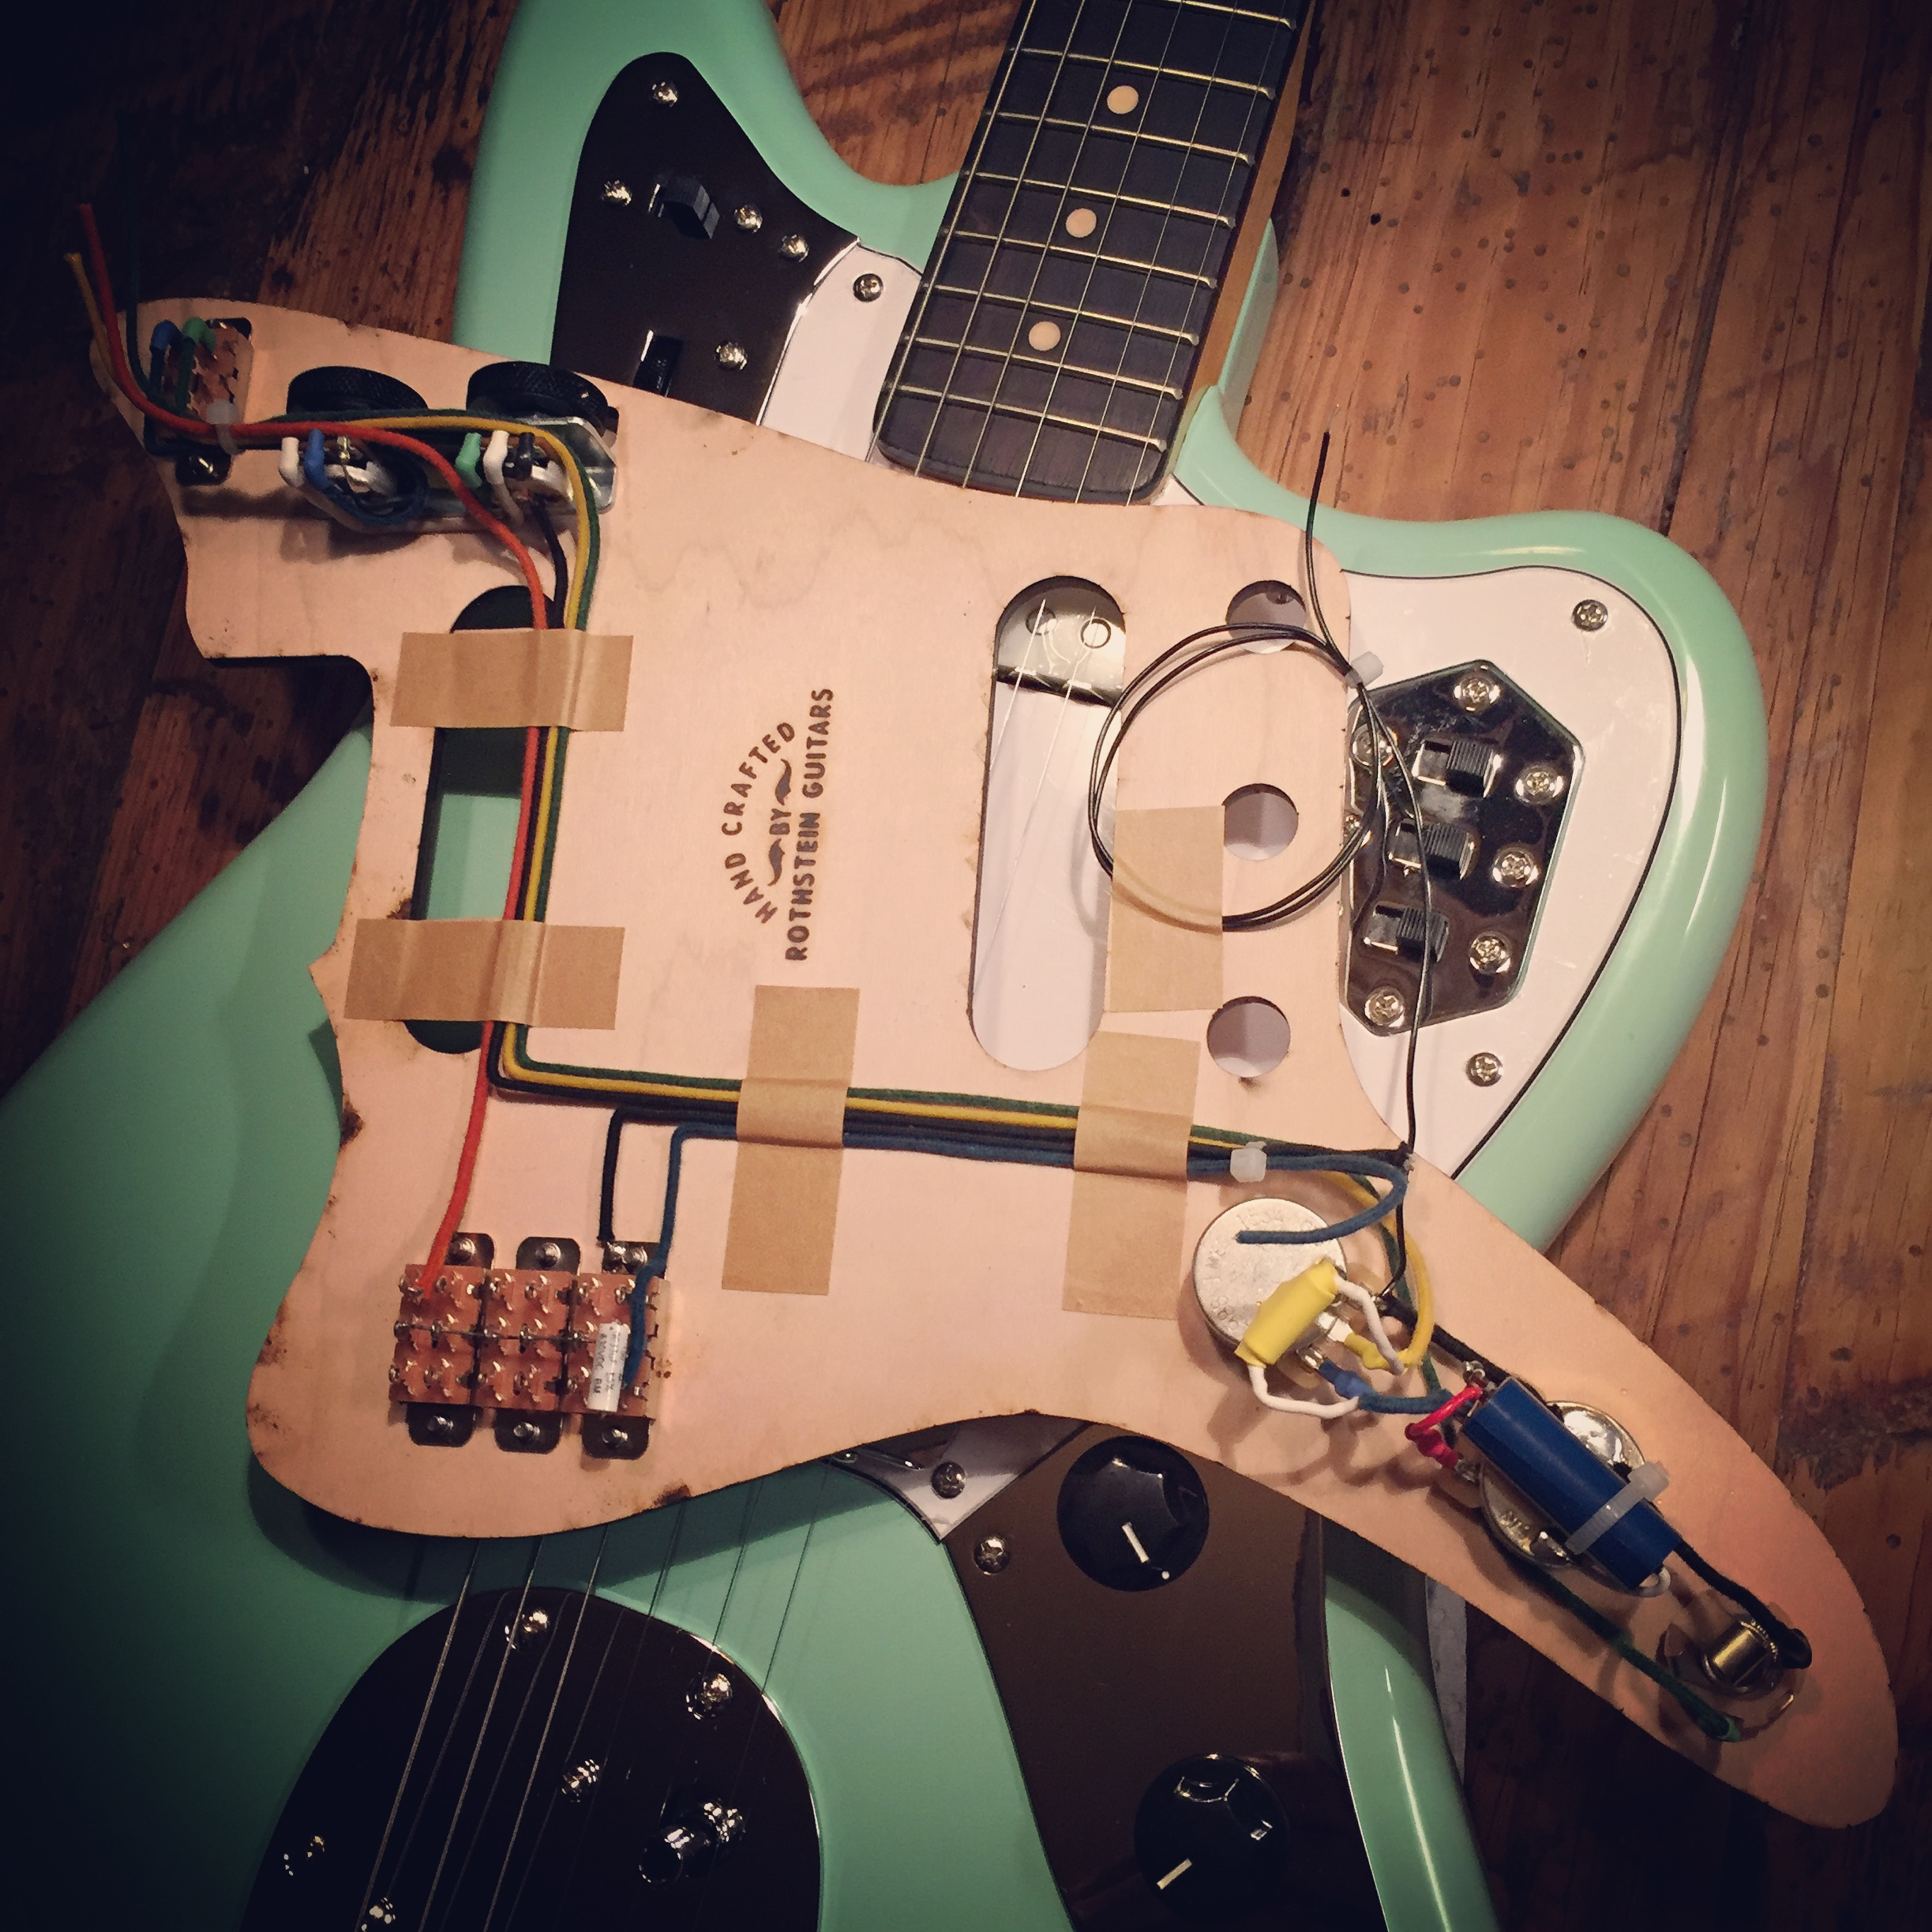 Swell Music Wrench Fender Jaguar Wiring Mod Basic Electronics Wiring Diagram Wiring Cloud Oideiuggs Outletorg